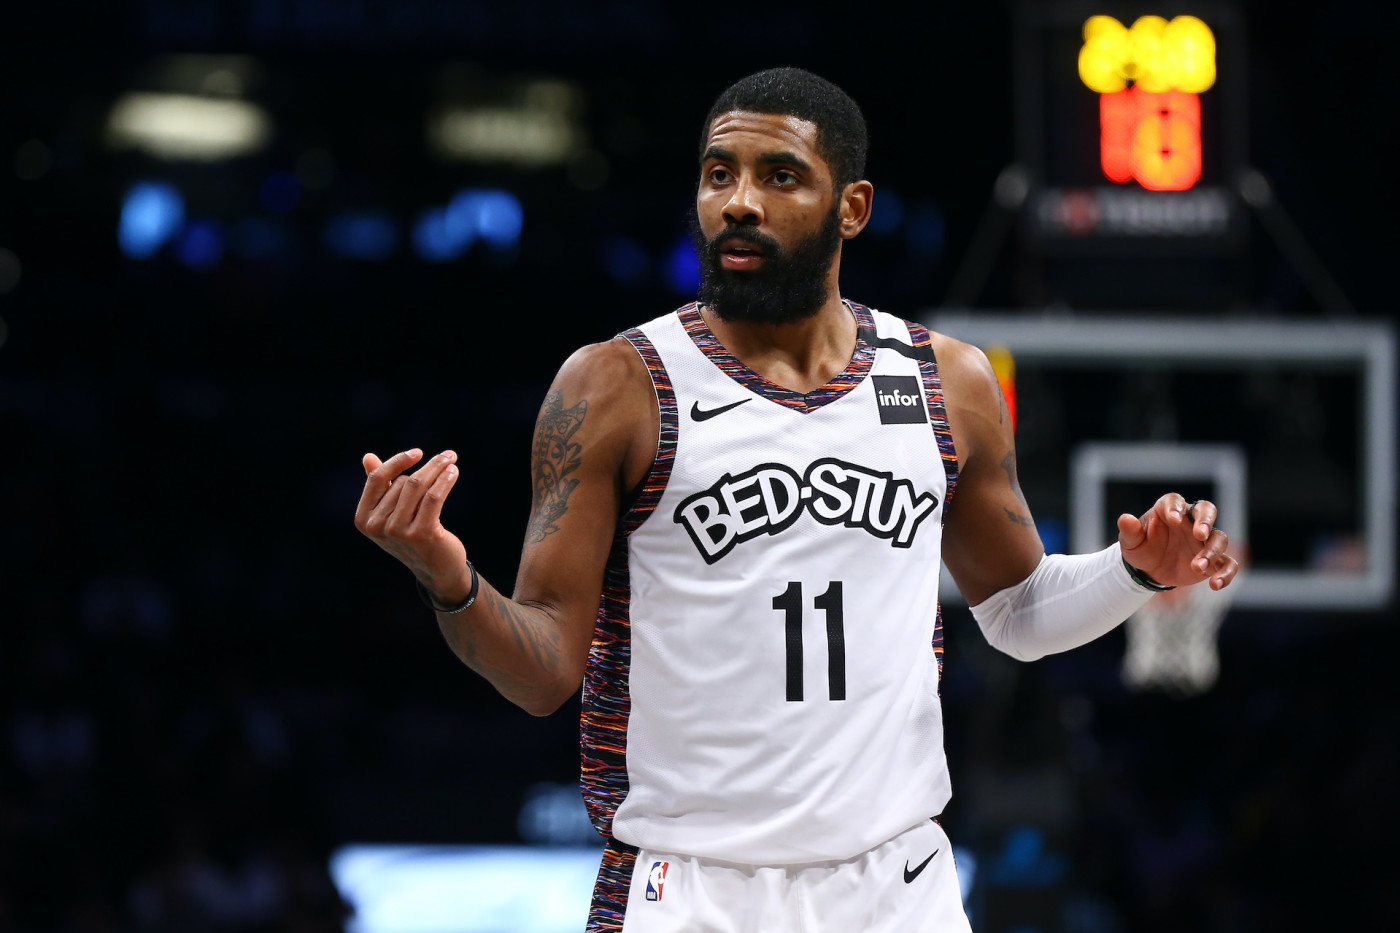 Kyrie Irving Talks About His Mentor Kobe Bryant on Instagram Live